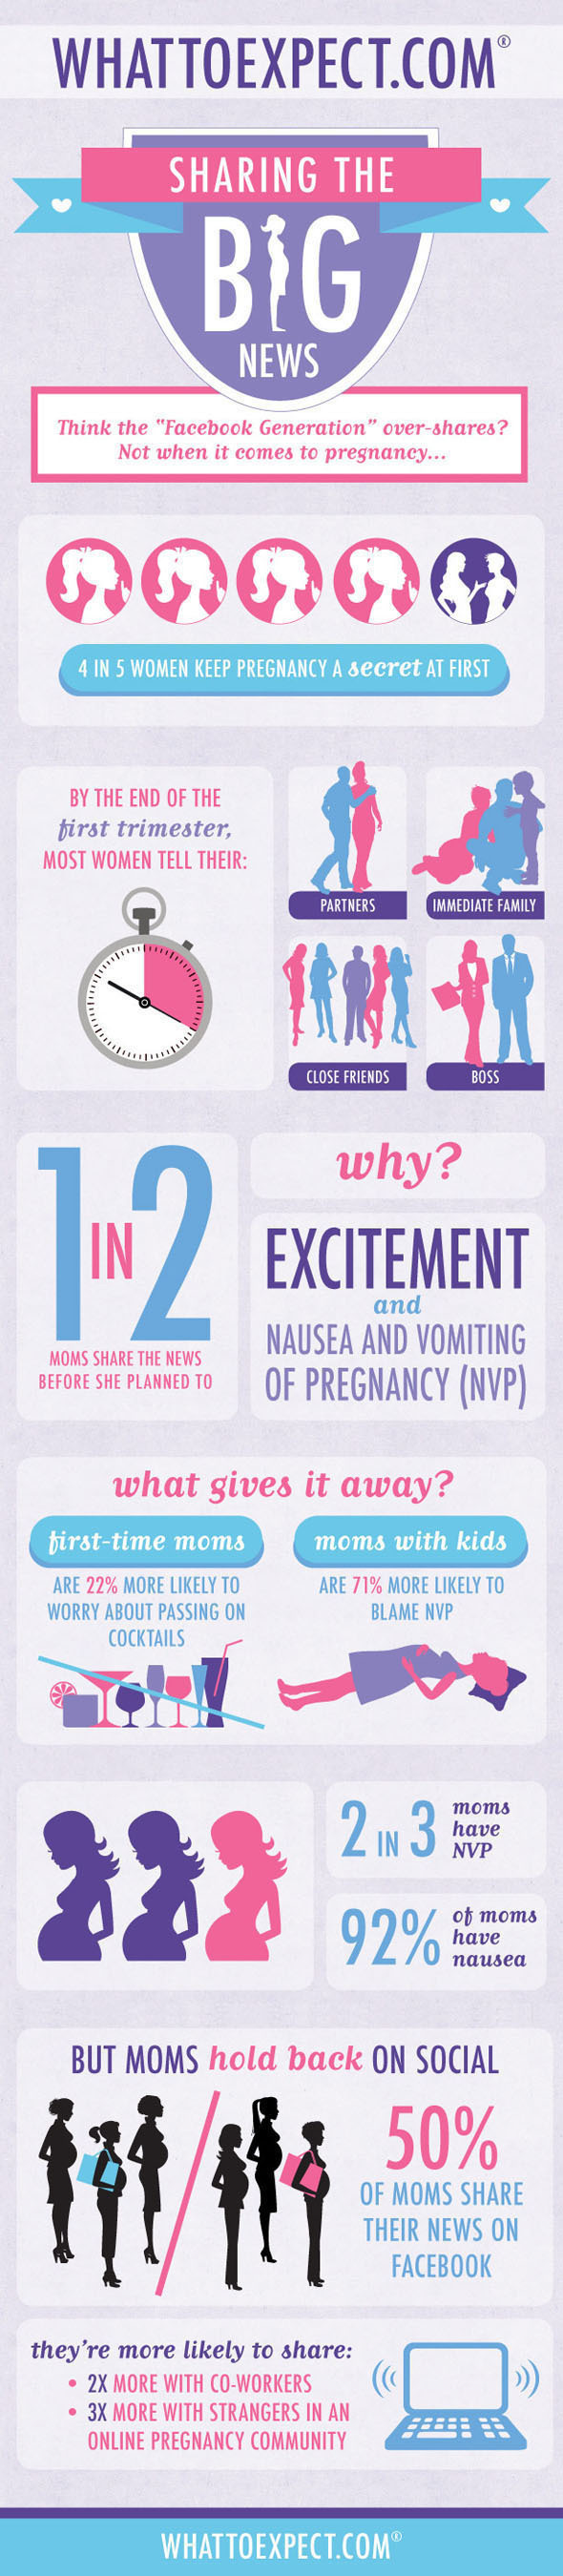 WhatToExpect.com, a leader in pregnancy and parenting, sheds light on women's experience of early-stage ...